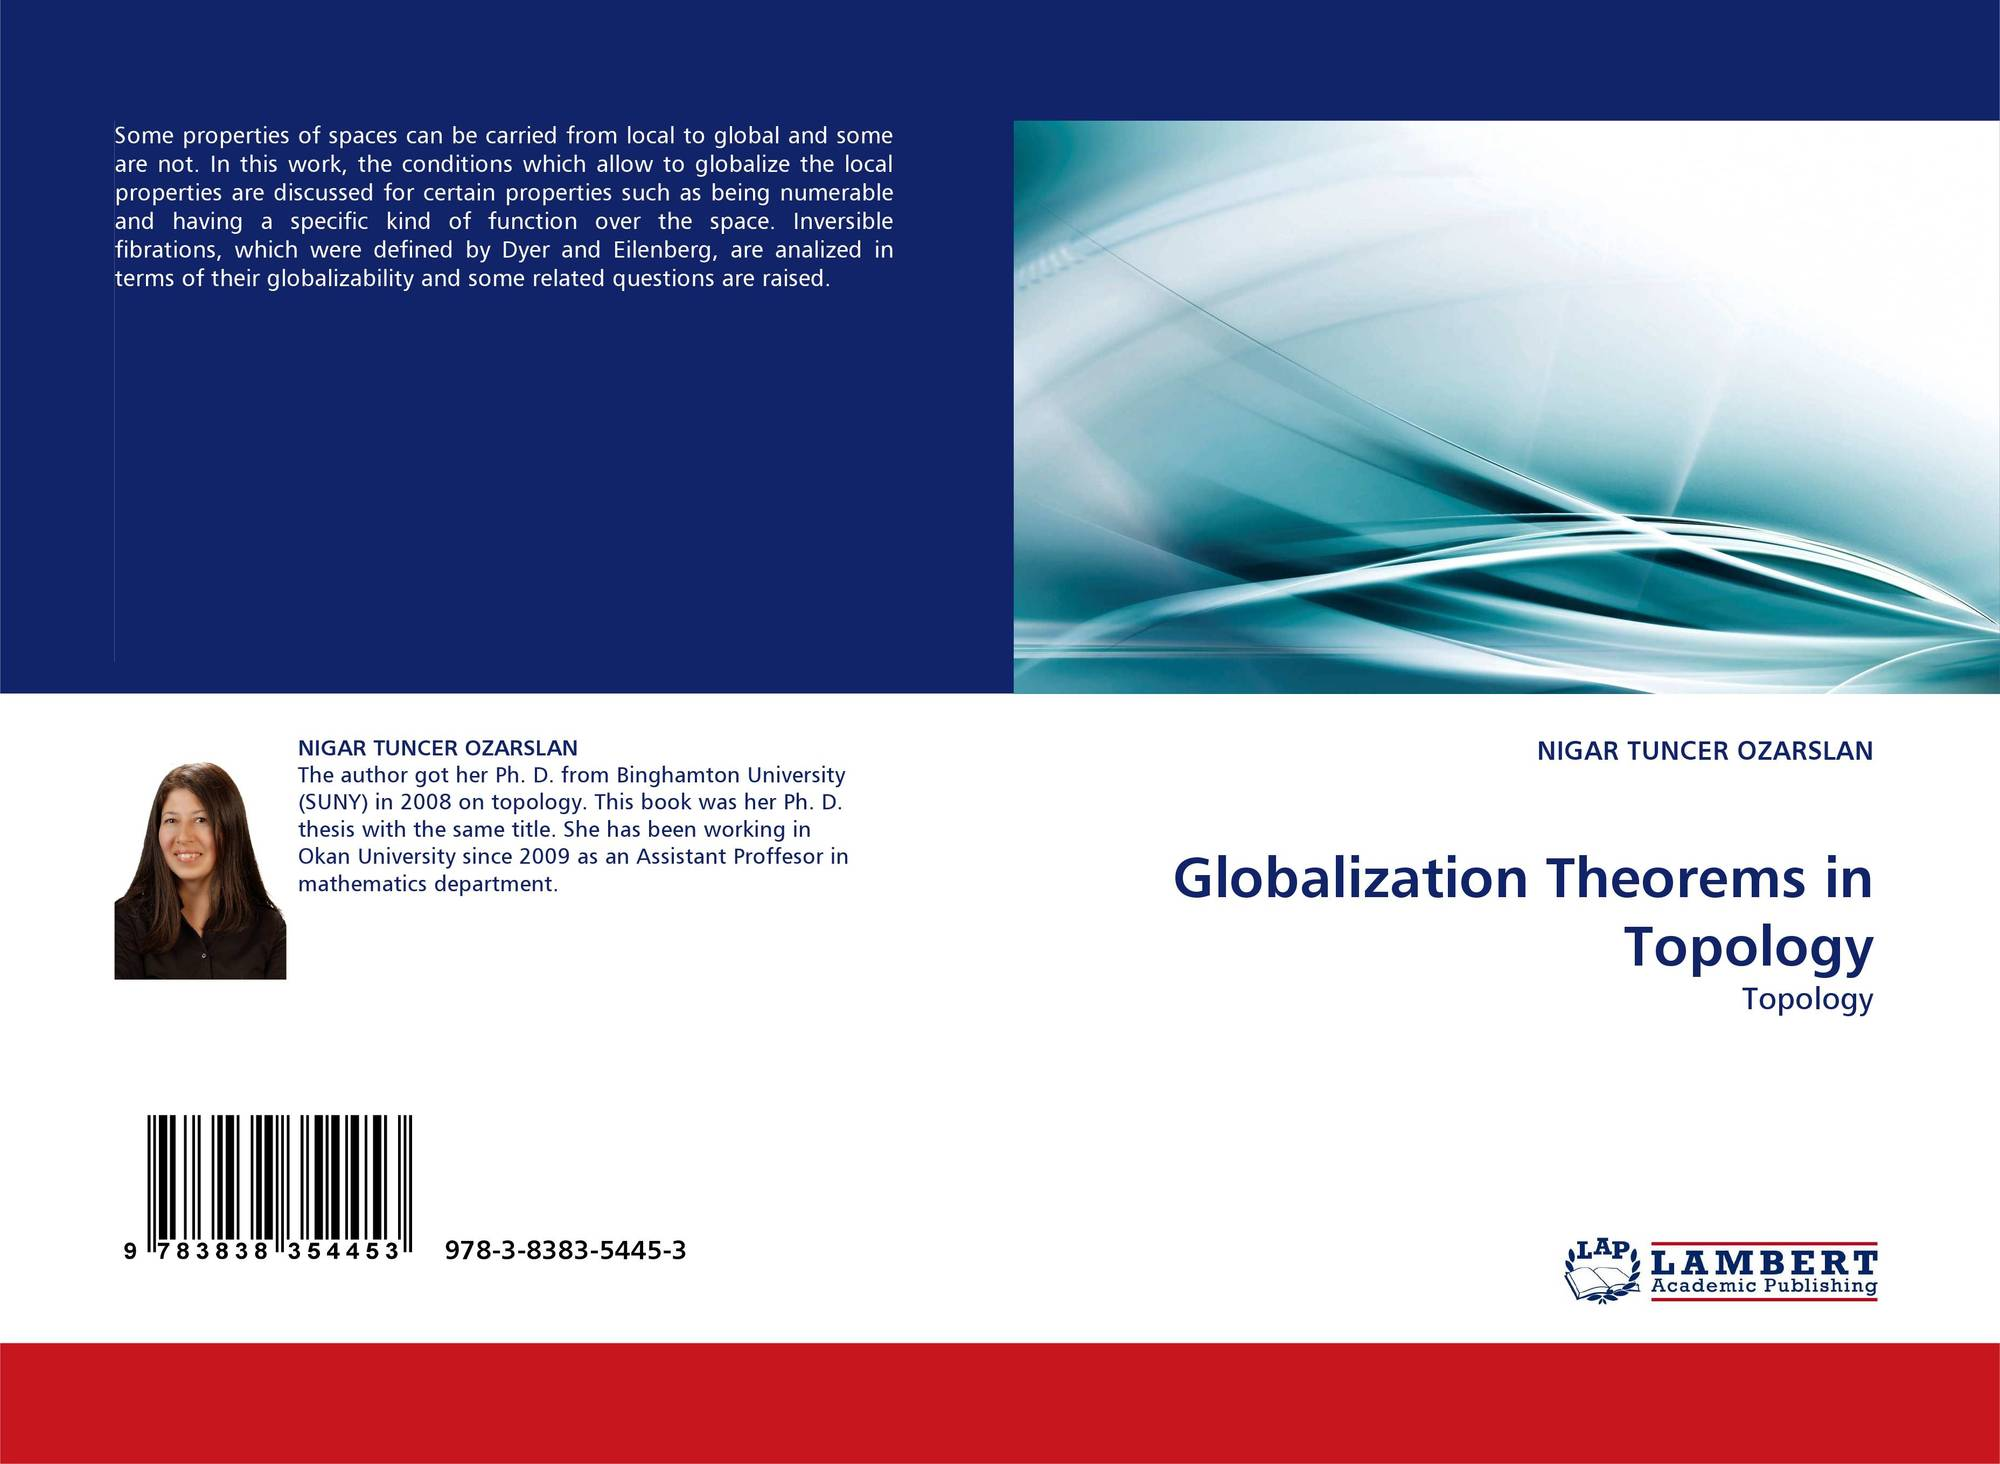 Globalization Theorems in Topology, 978-3-8383-5445-3